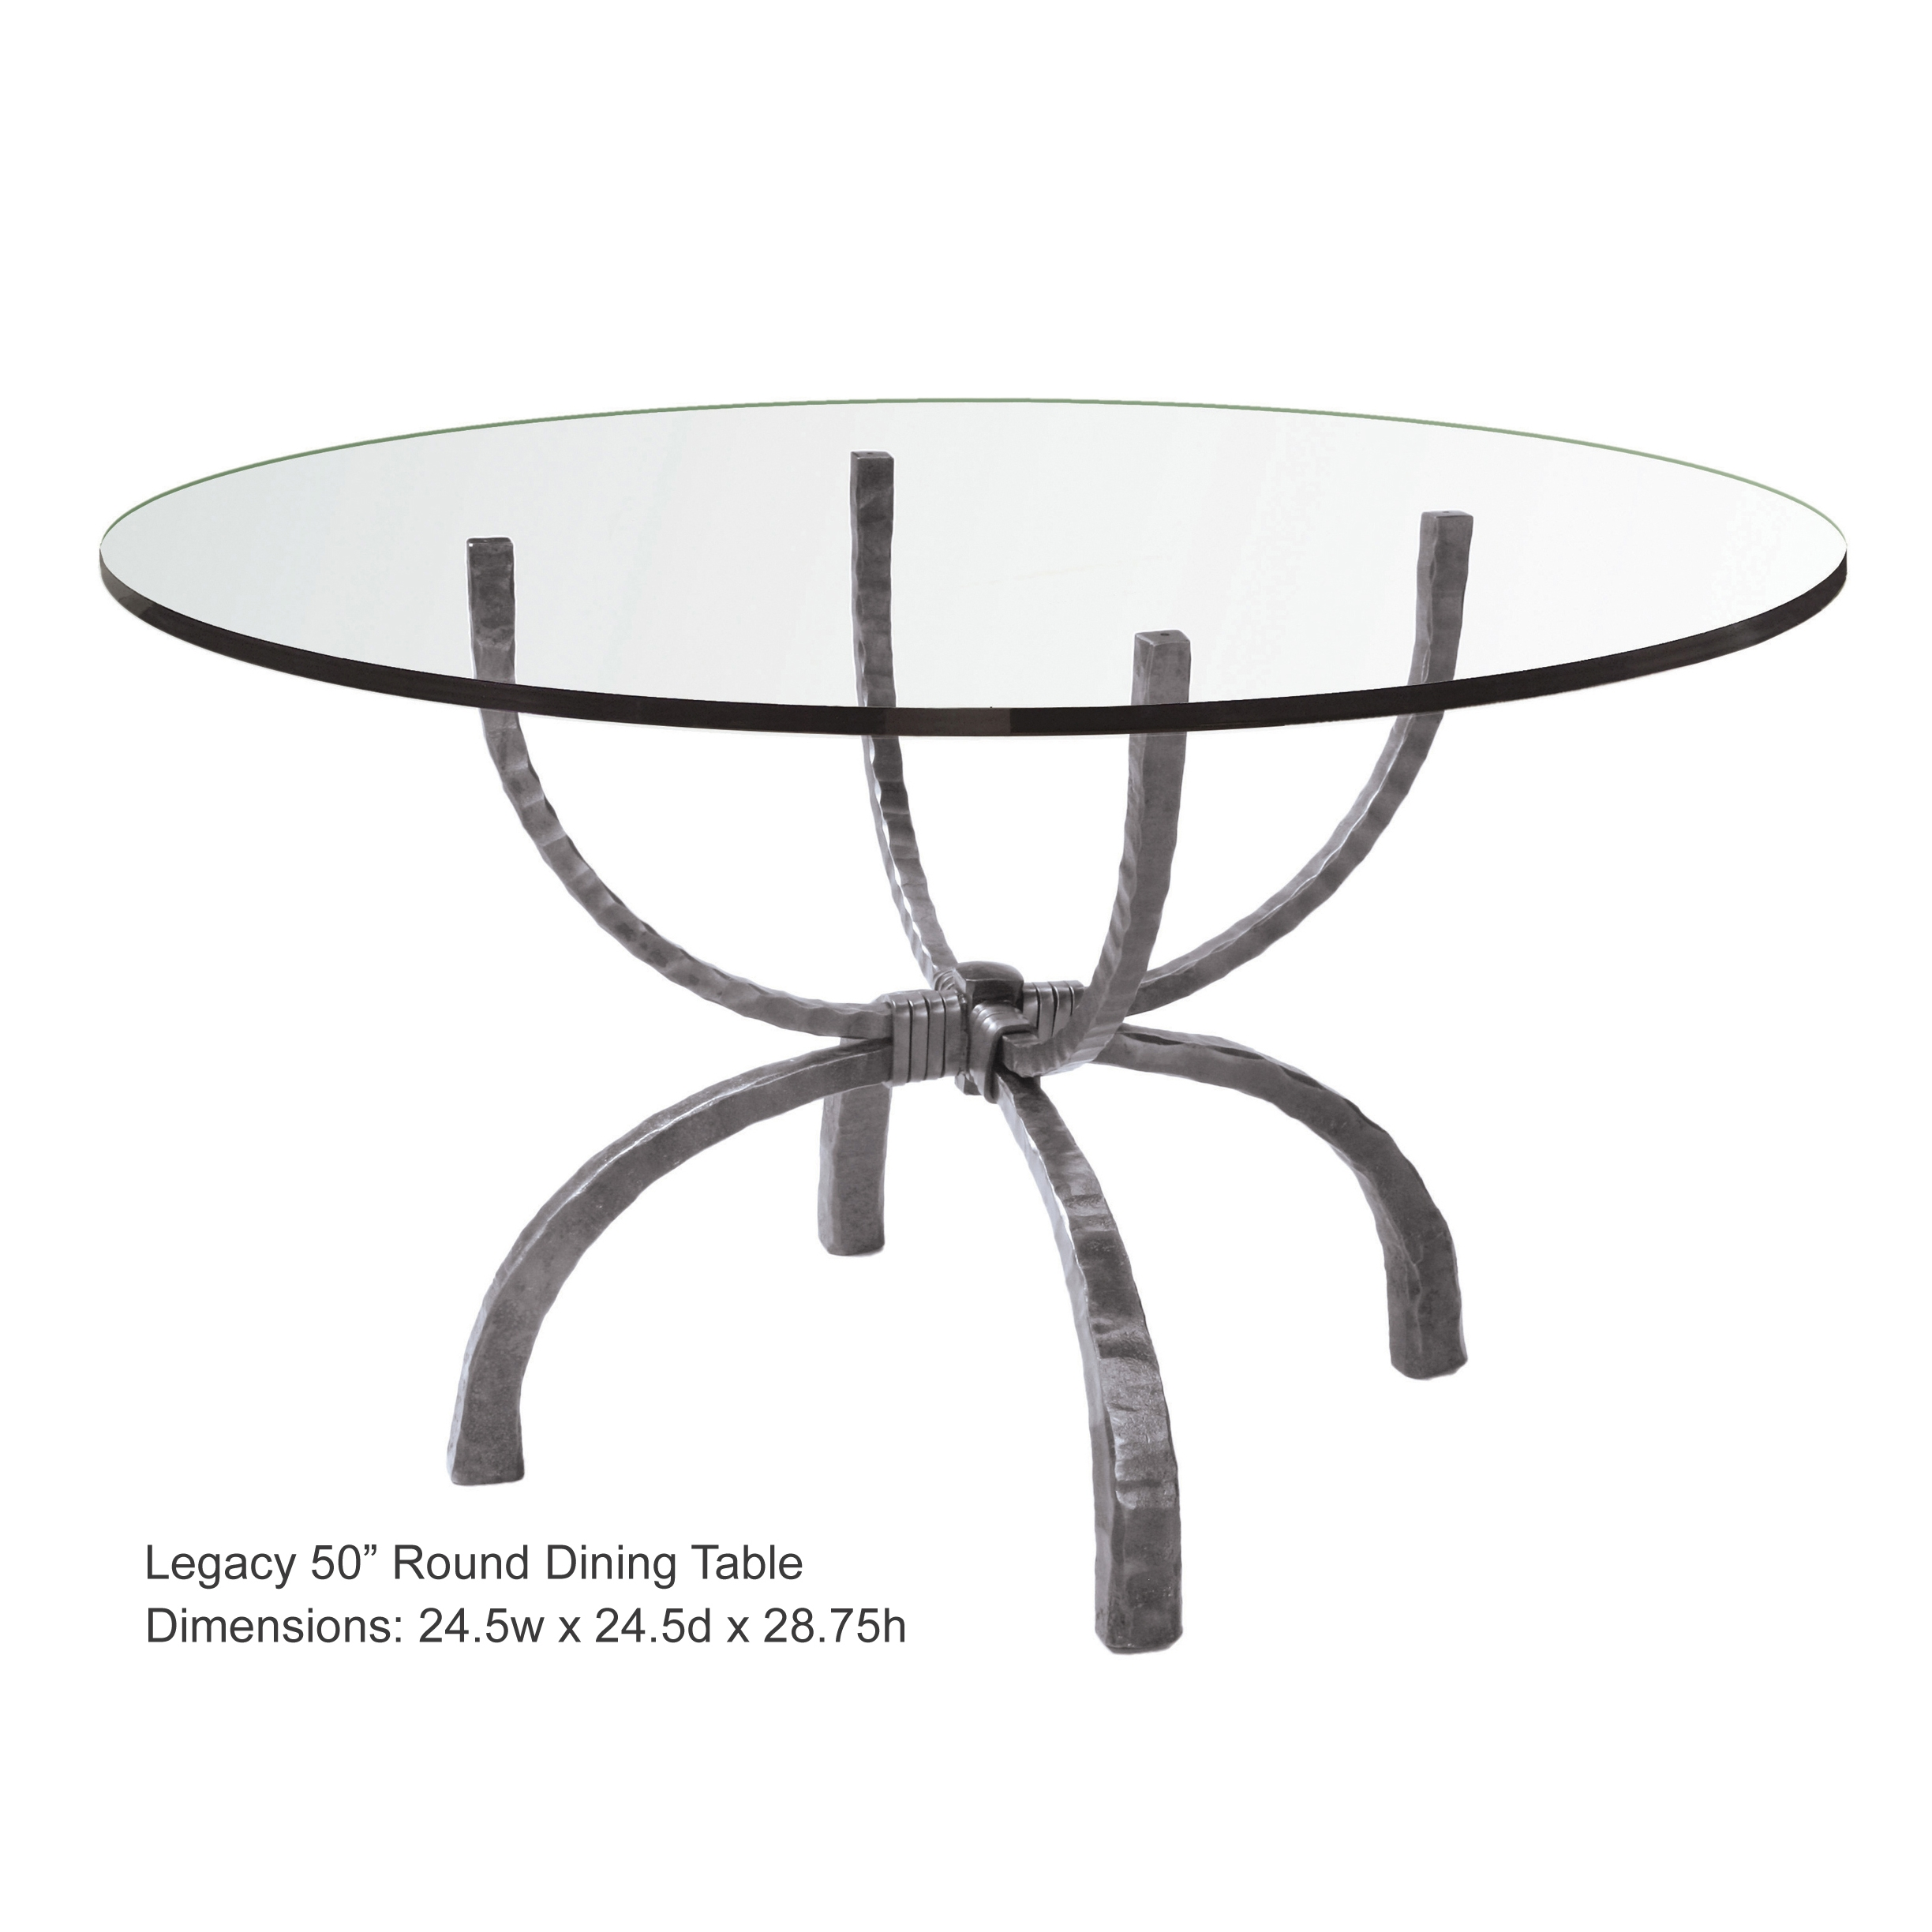 Merveilleux Wrought Iron Legacy 50in Round Dining Table By Charleston Forge · Larger  Photo